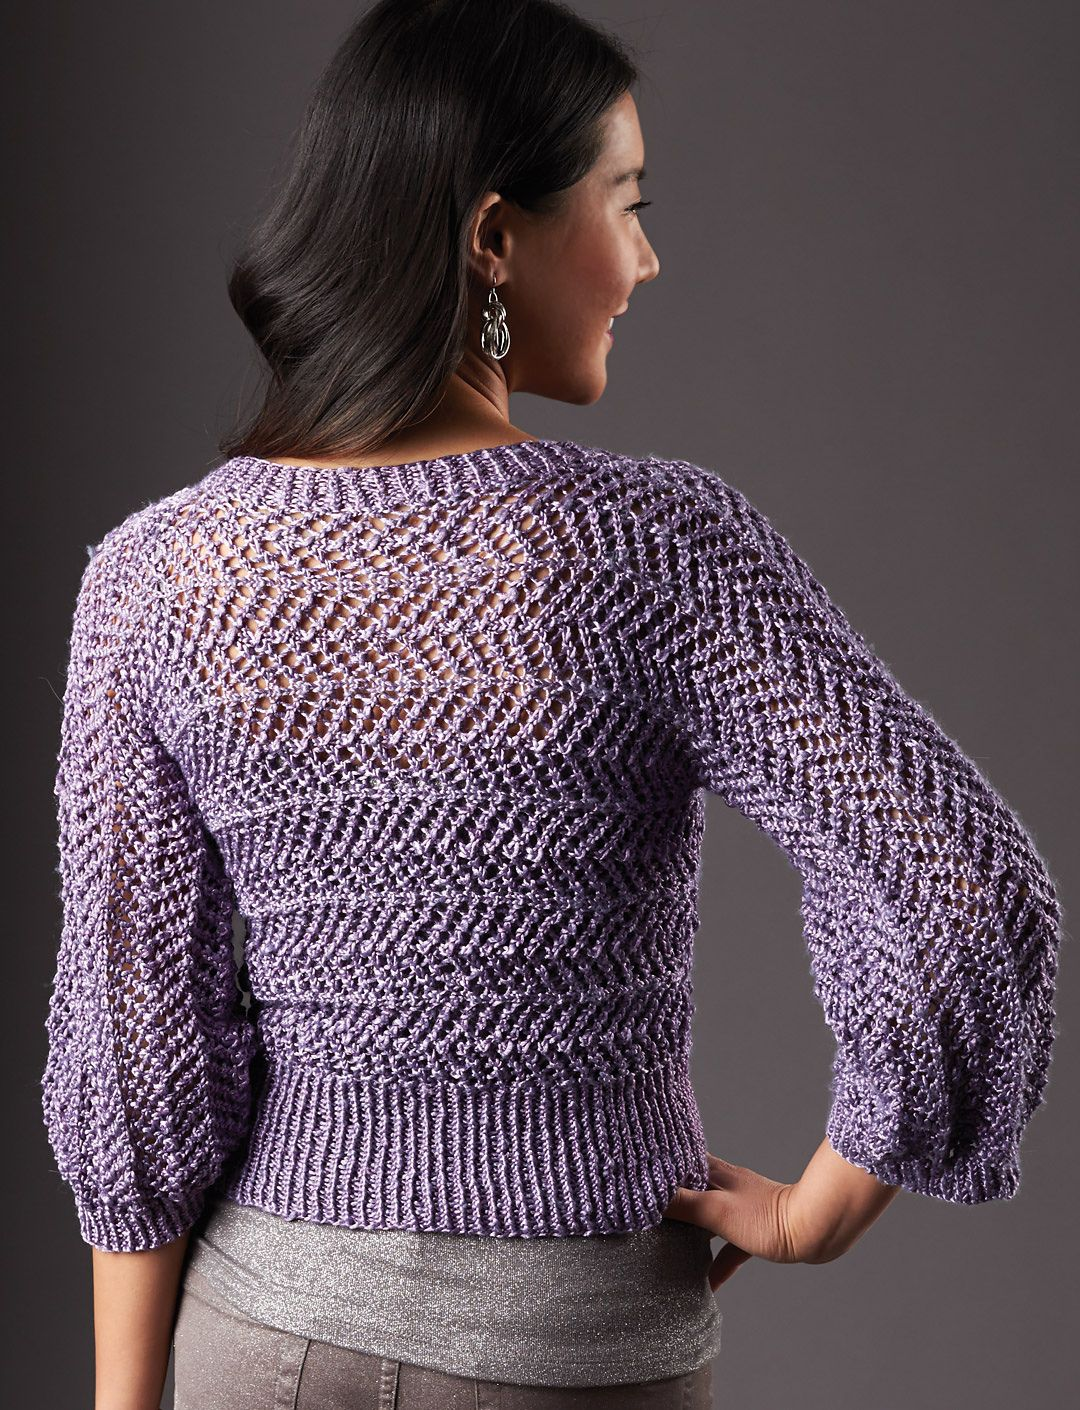 Dazzling Dolman pattern by Patons | free knitting patterns